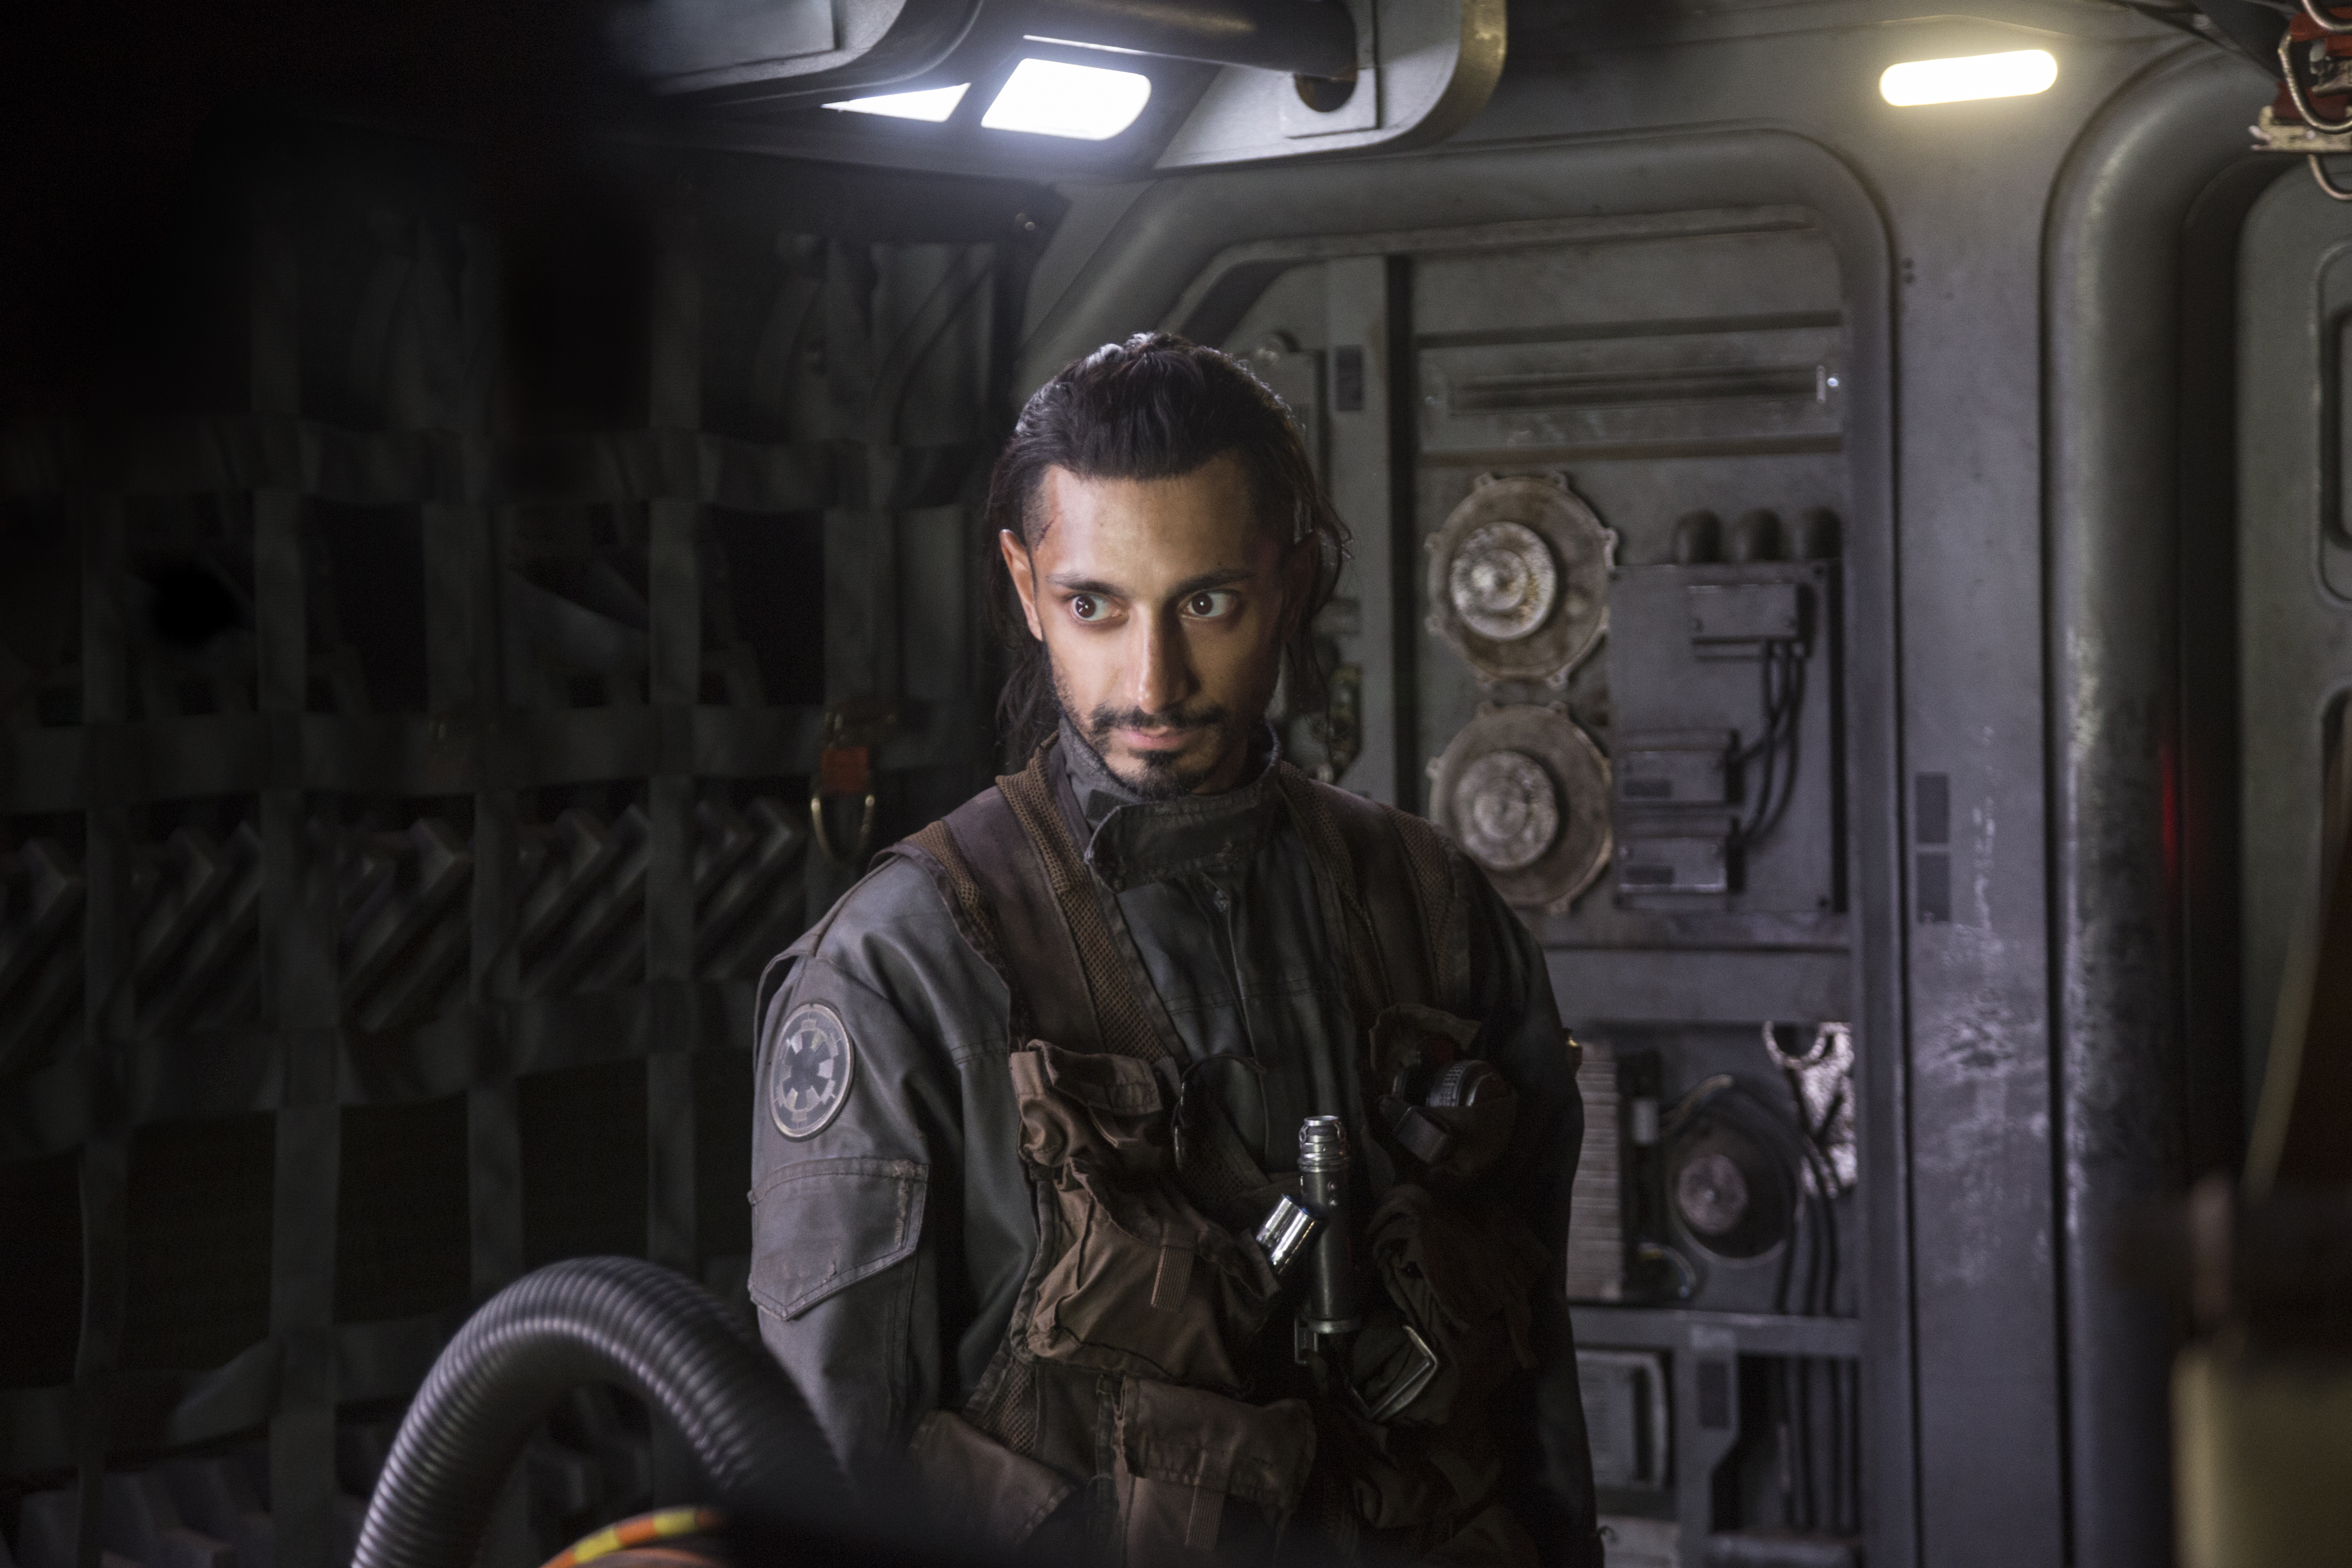 """This image released by Lucasfilm Ltd. shows Riz Ahmed as Bodhi Rook in a scene from, """"Rogue One: A Star Wars Story."""" (Jonathan Olley/Lucasfilm Ltd. via AP)"""